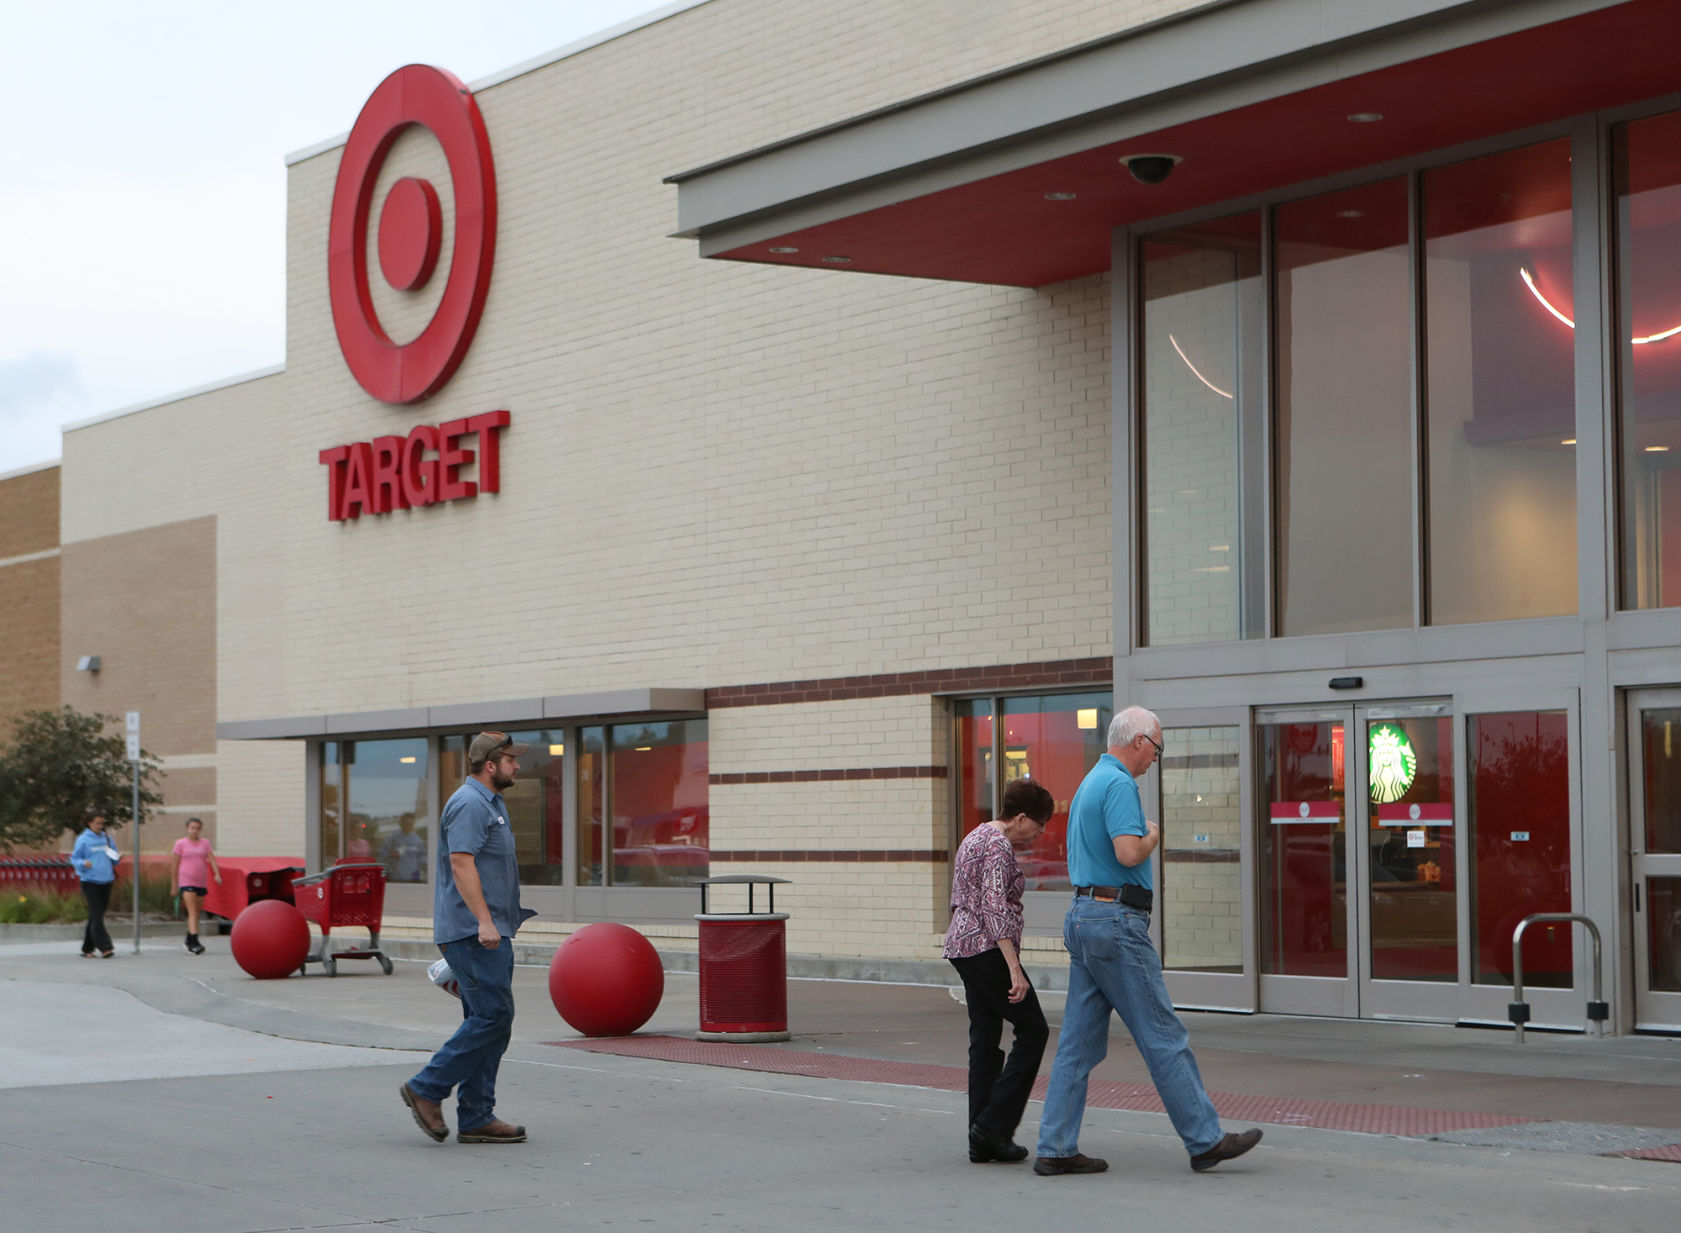 Target Will Raise Its Minimum Wage to $15 Per Hour by 2020